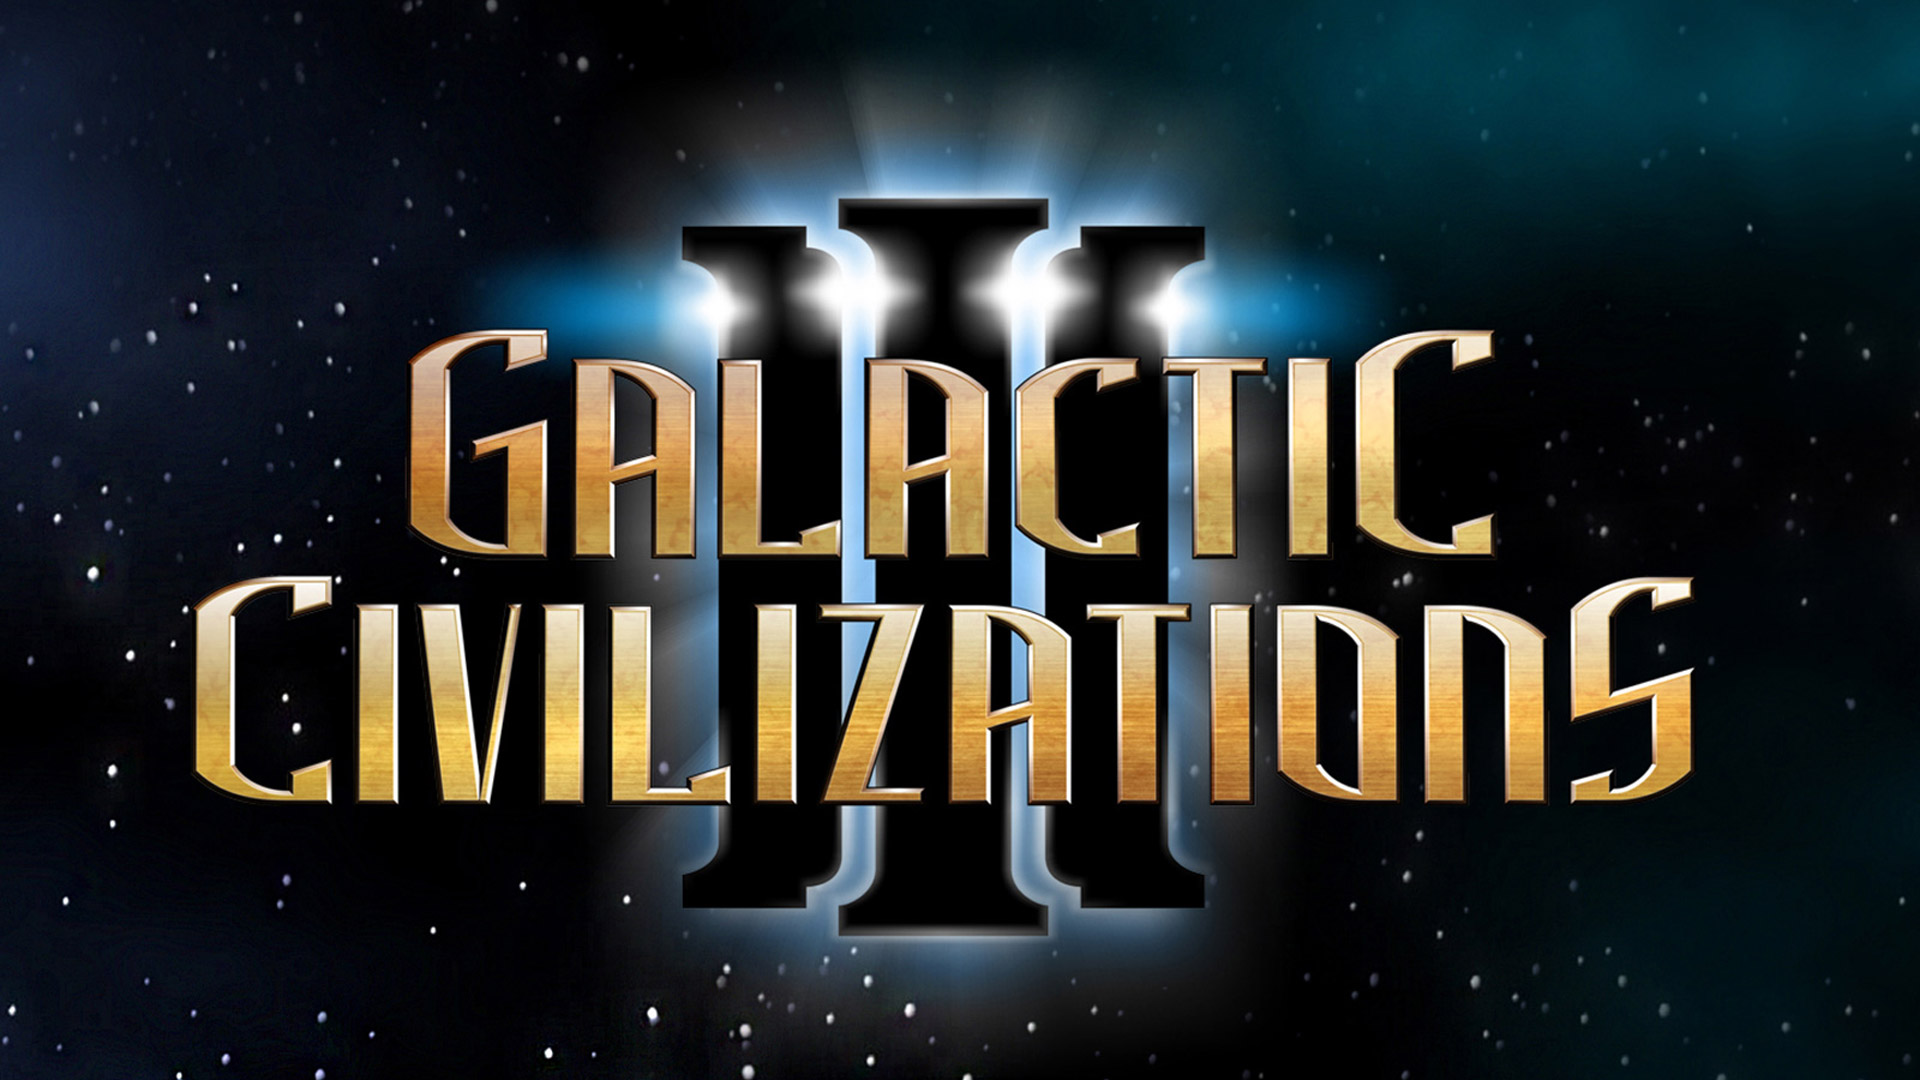 Free Galactic Civilizations III Wallpaper in 1920x1080